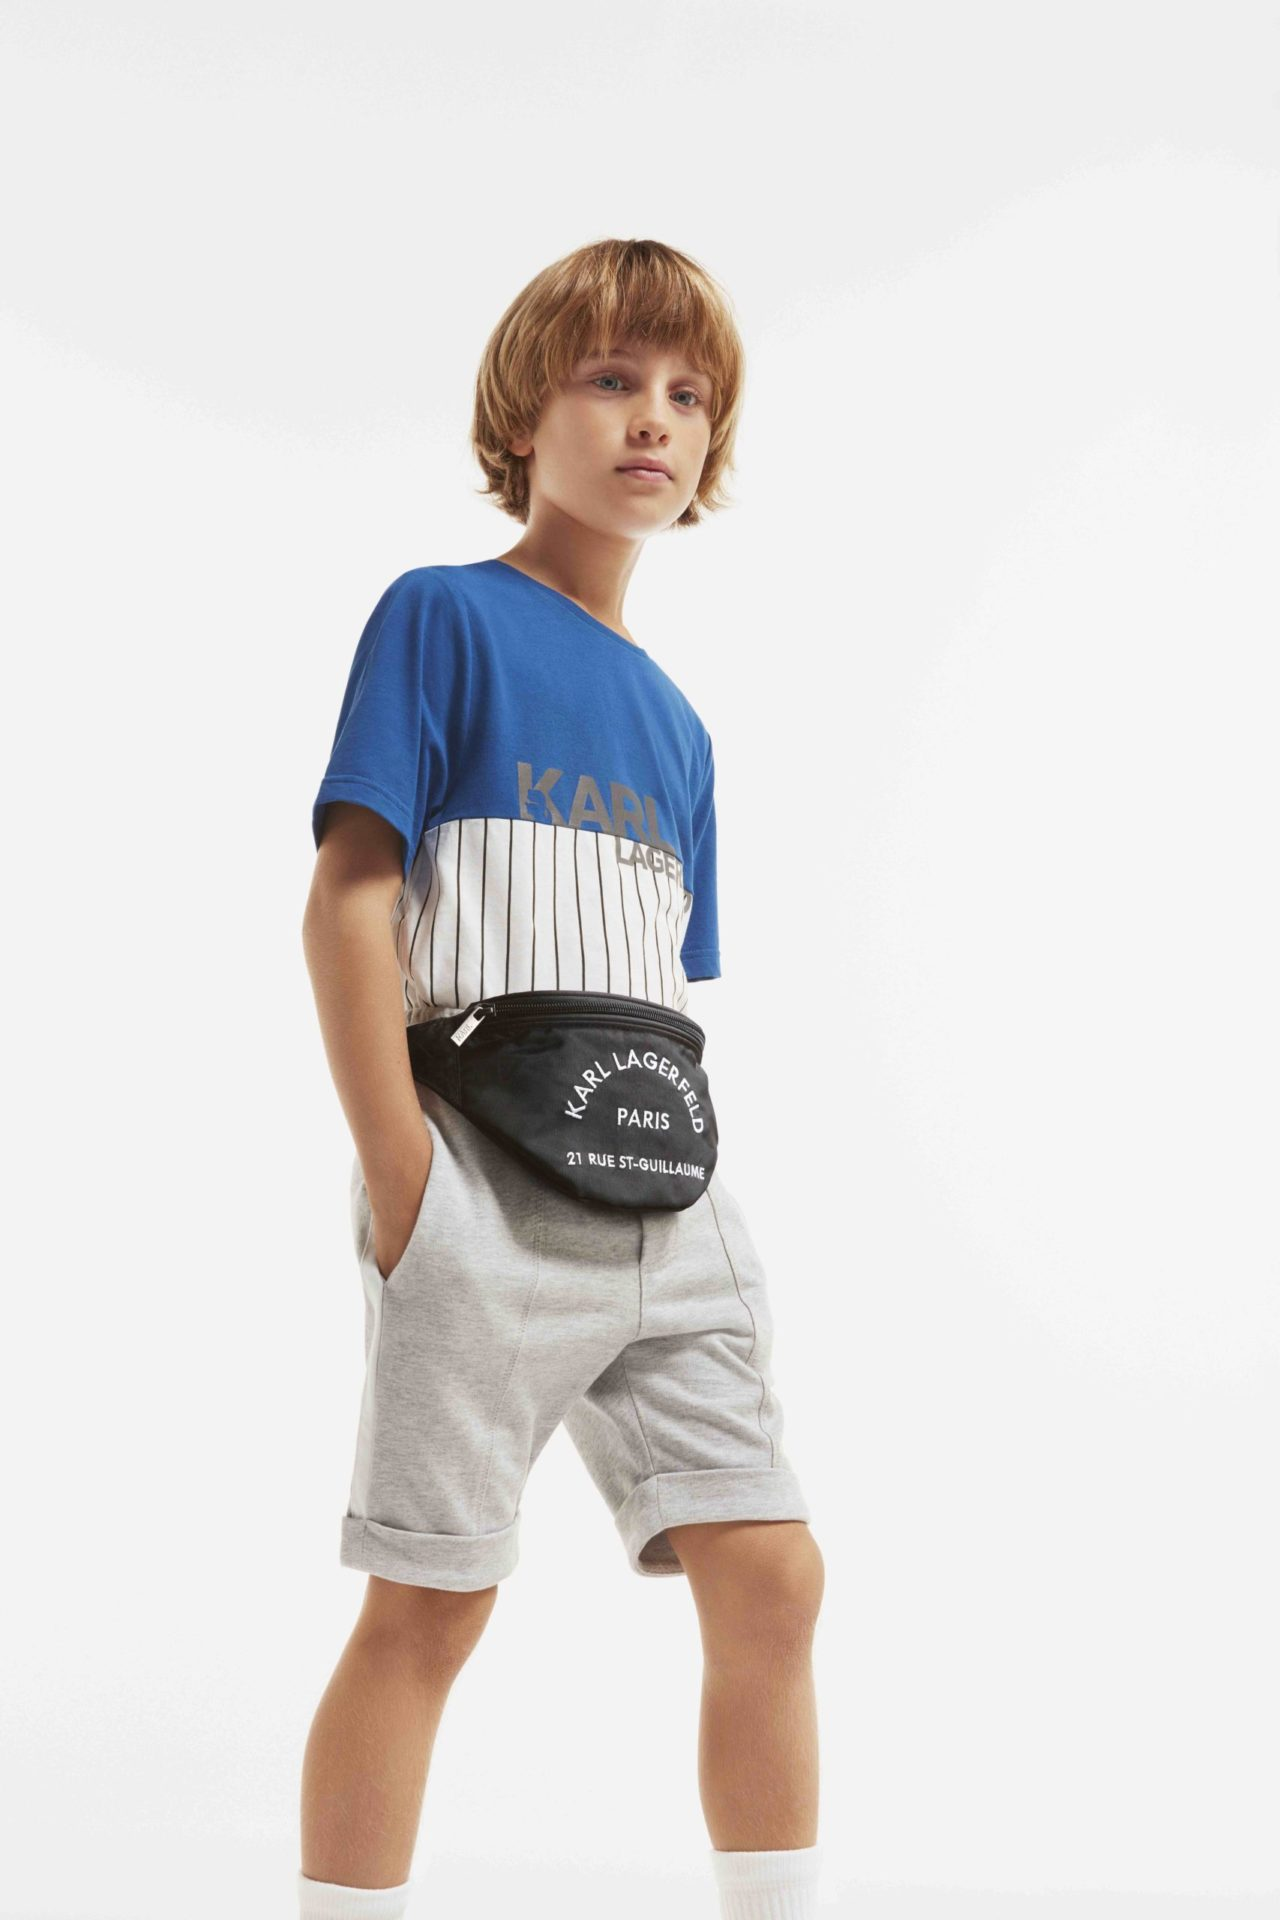 Easy to wear sports styling at Karl Lagerfeld childrenswear